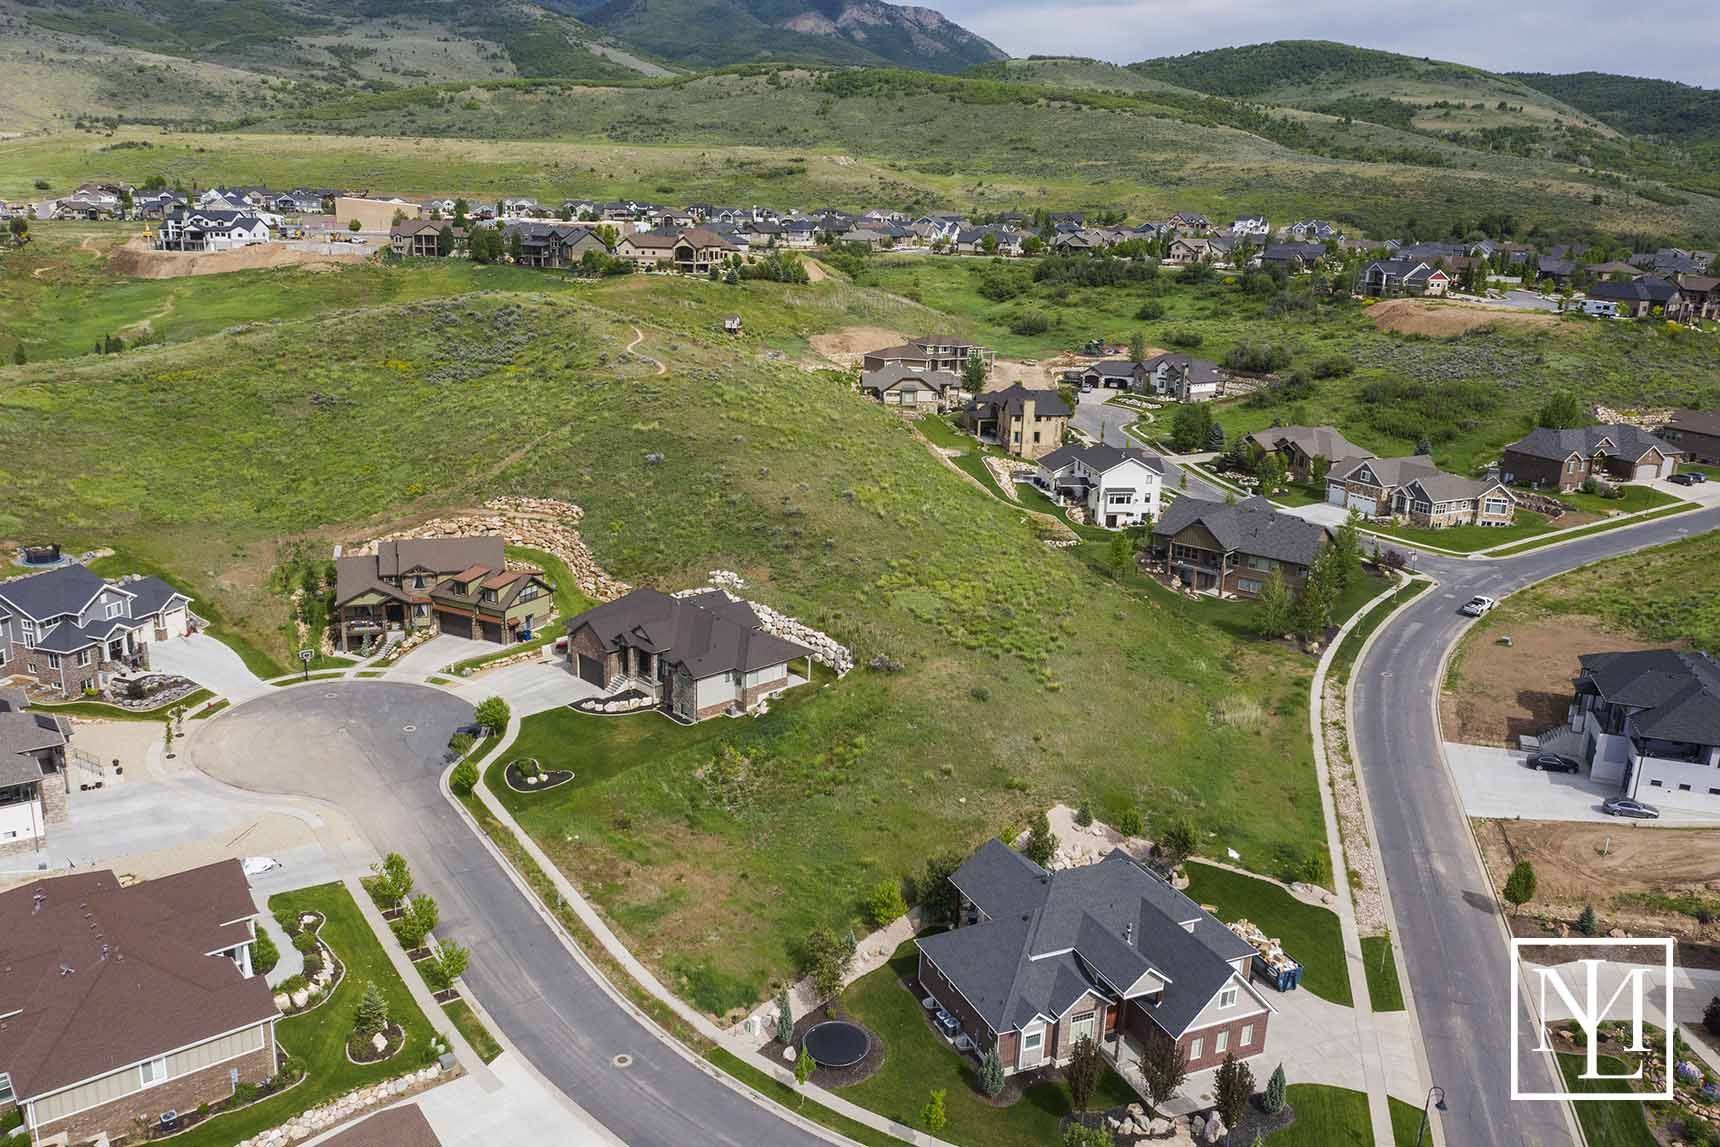 3521 W Sunrise Circle, Mountain Green, UT 84050 02